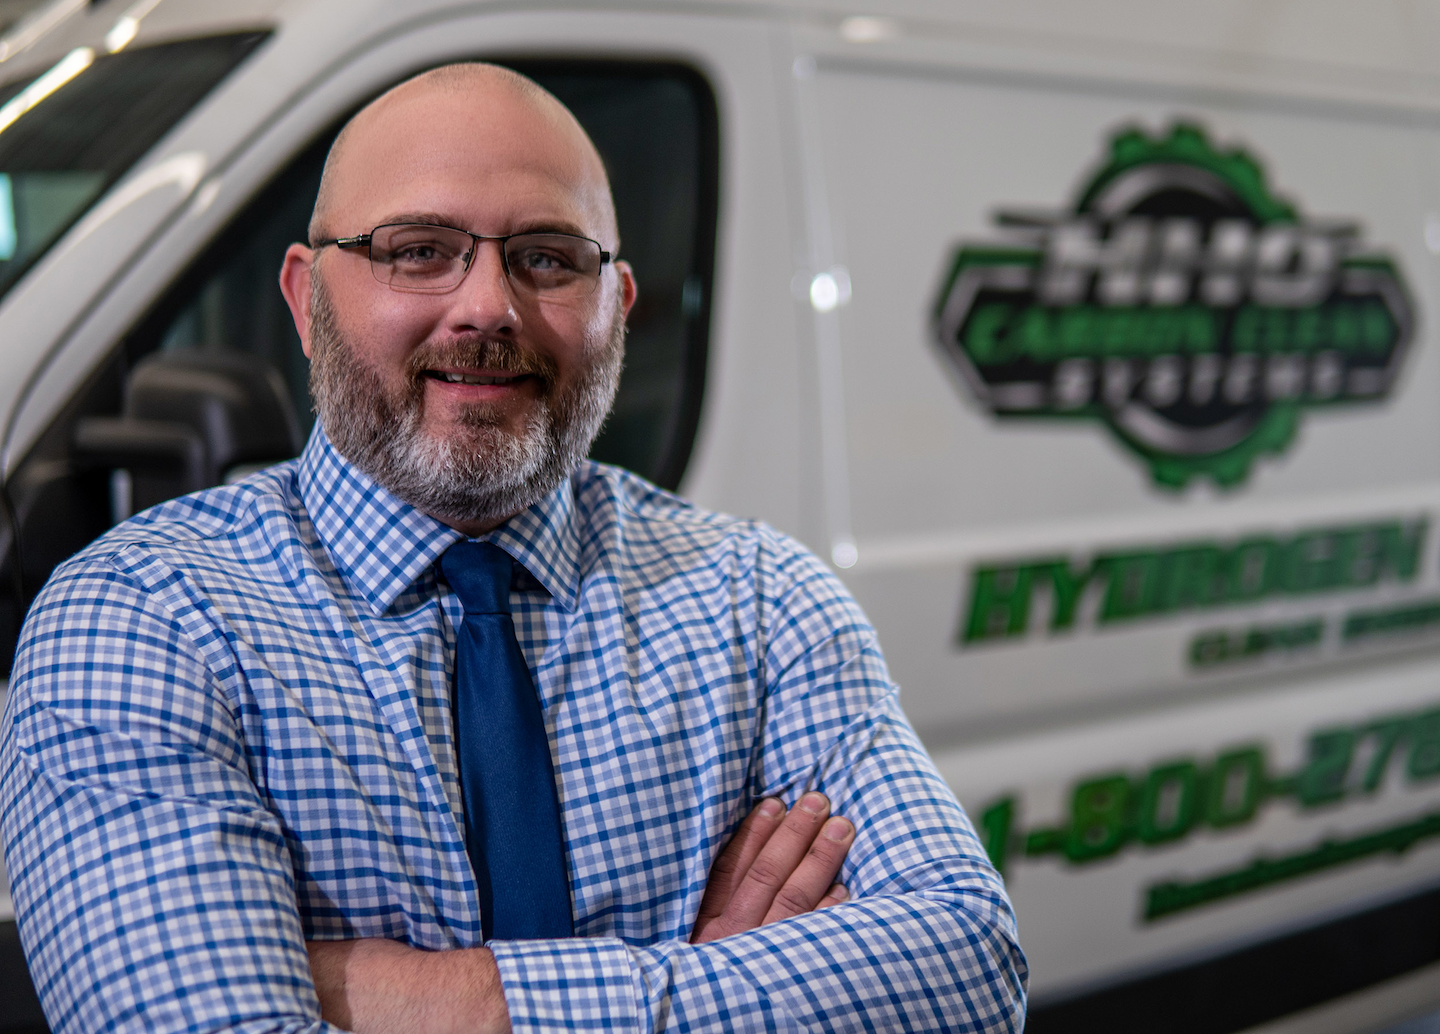 Jared English, founder of HHO Carbon Clean Systems